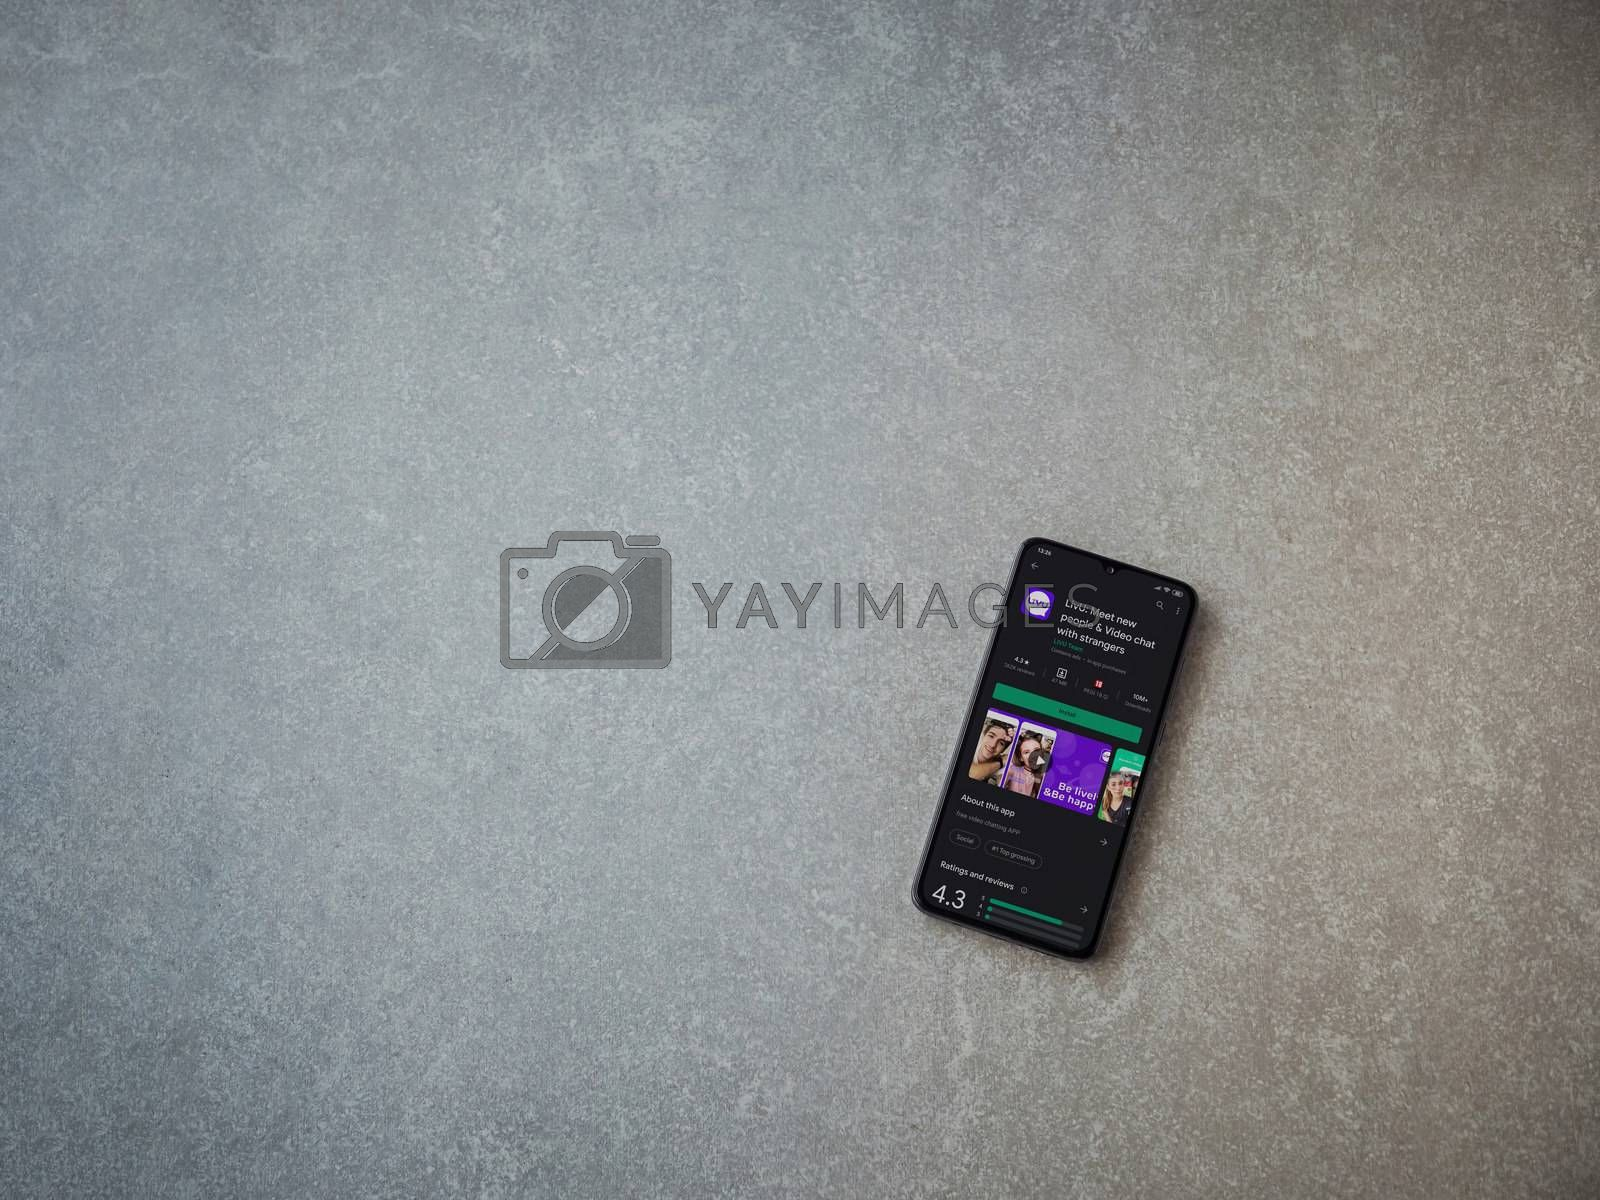 Lod, Israel - July 8, 2020: LiveU app play store page on the display of a black mobile smartphone on ceramic stone background. Top view flat lay with copy space.